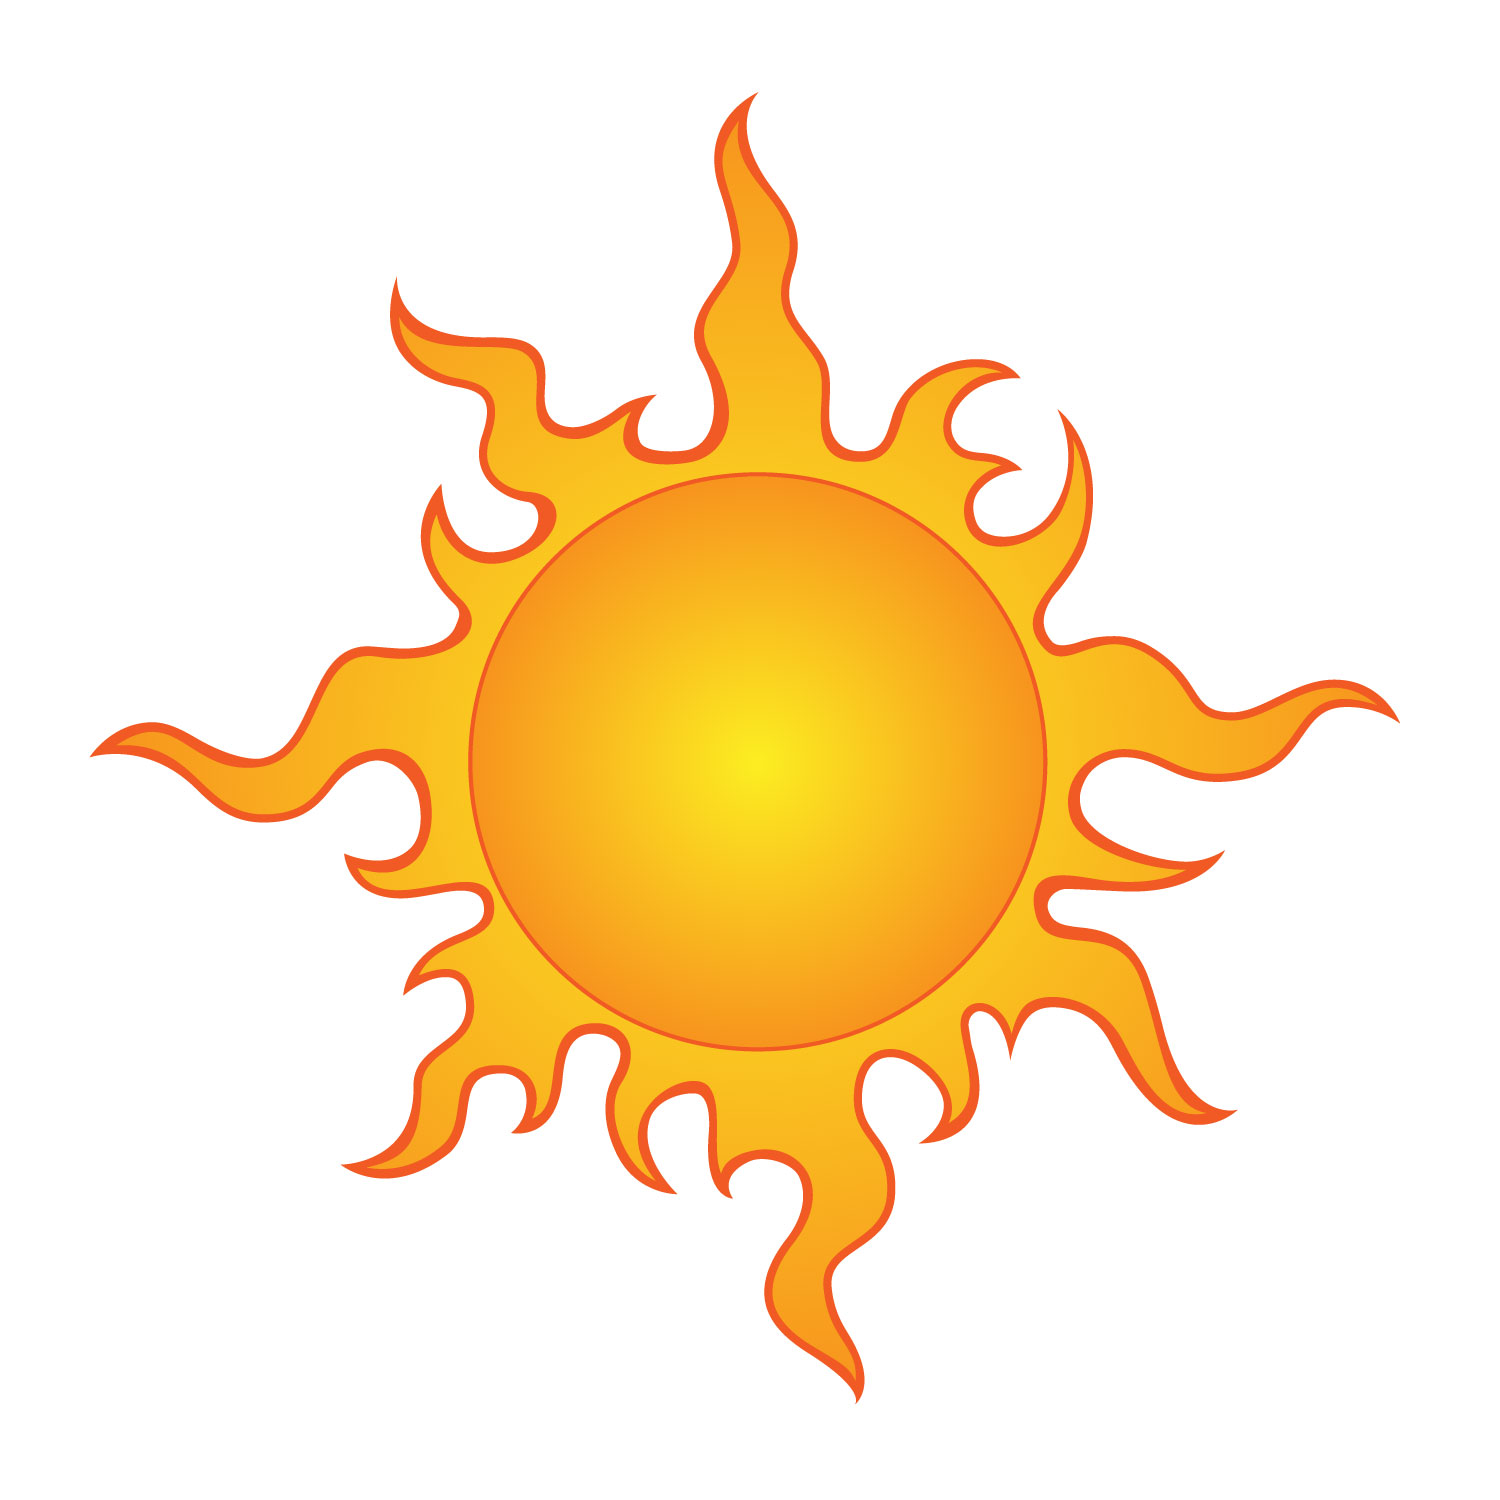 Clipart sun colored. Free drawings of the